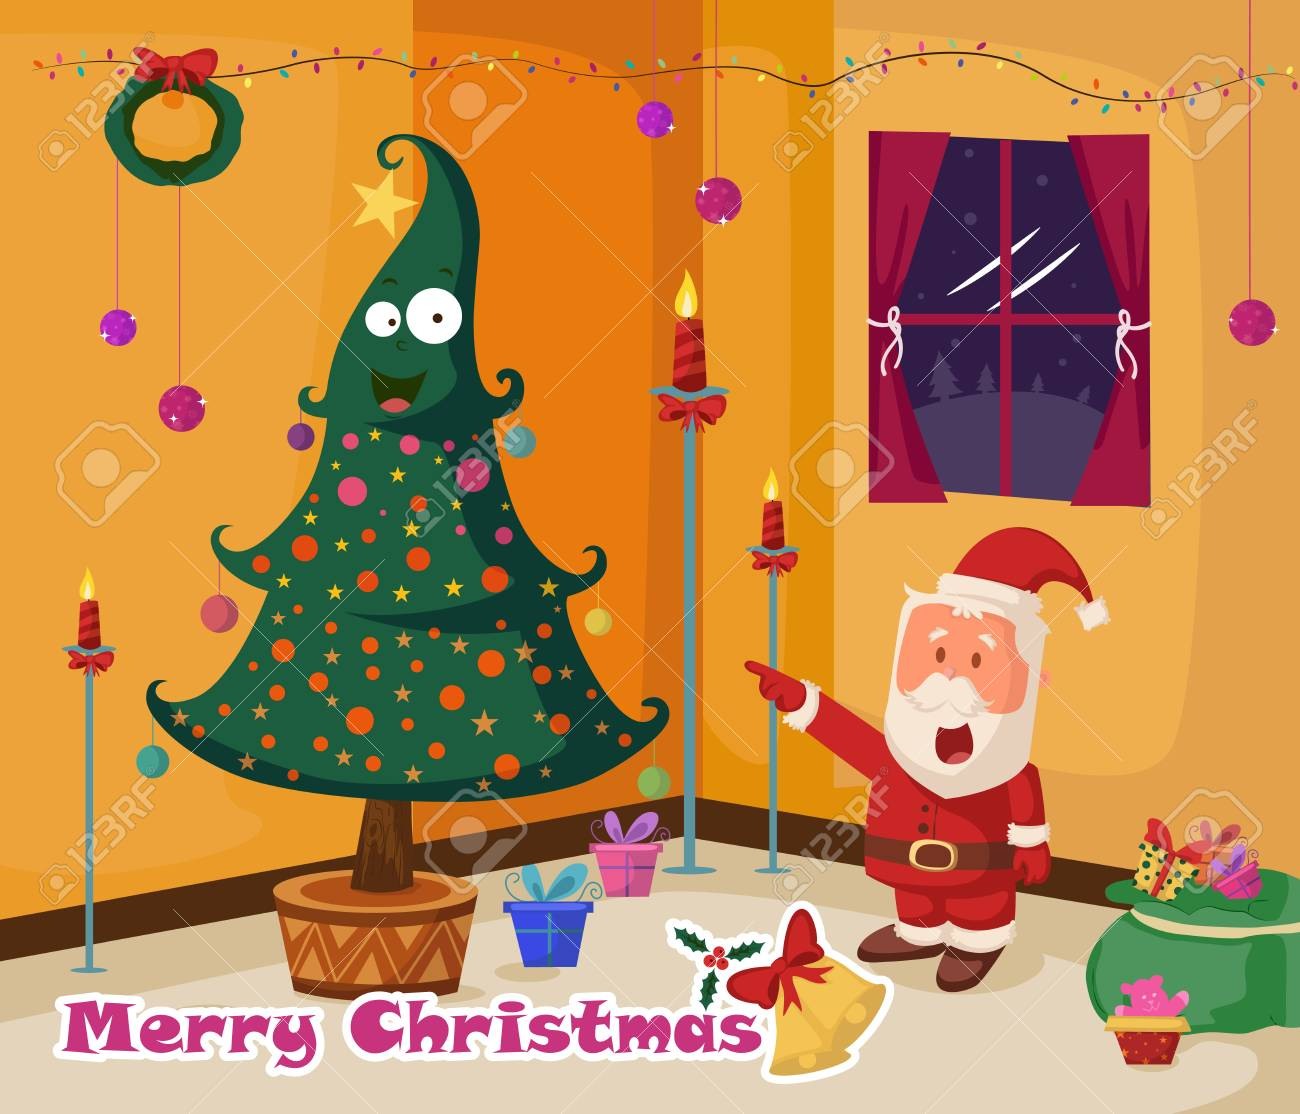 Santa claus with gift for merry christmas holiday greeting card santa claus with gift for merry christmas holiday greeting card background in vector stock vector kristyandbryce Gallery